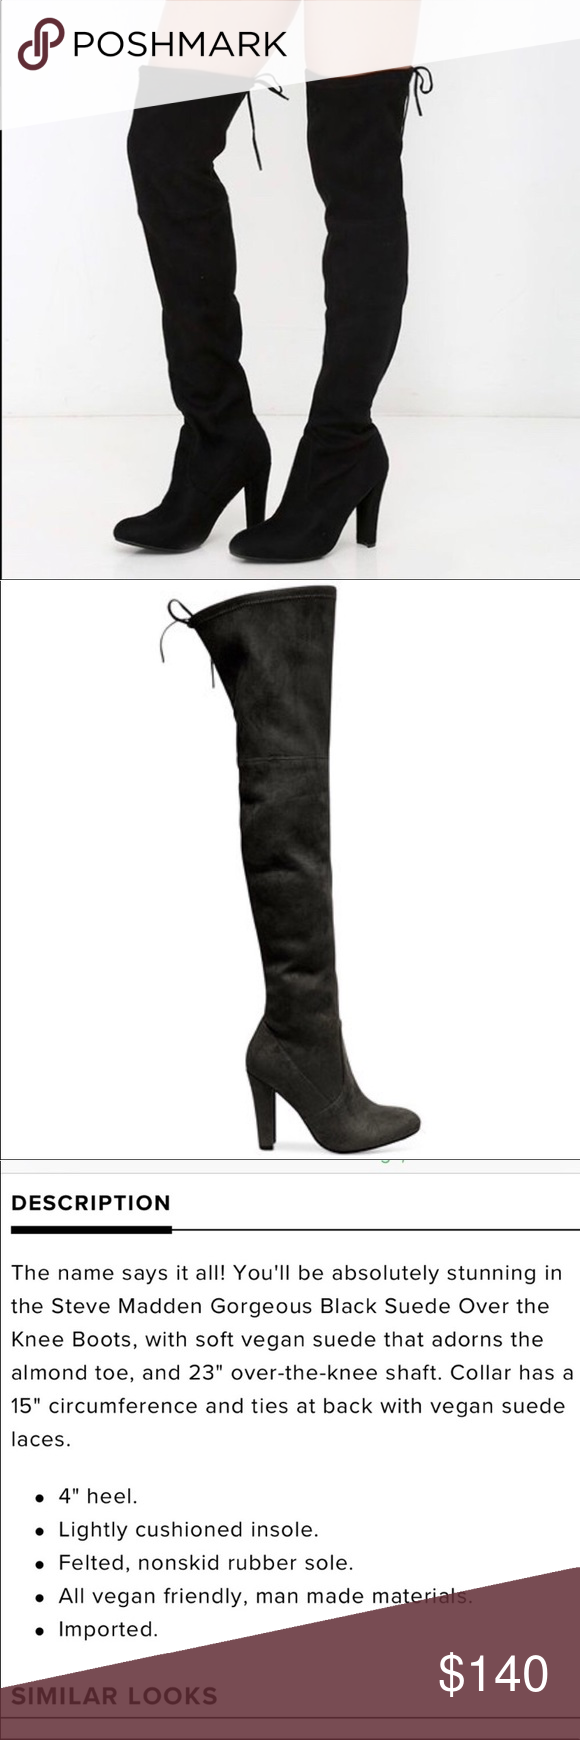 "90bbe95a70d Steve Madden ""Gorgeous"" Over the knee black boots Steve Madden ""Gorgeous""  Over the knee black heeled boots. Like brand new! Worn once! Size 6.5 M  Steve ..."